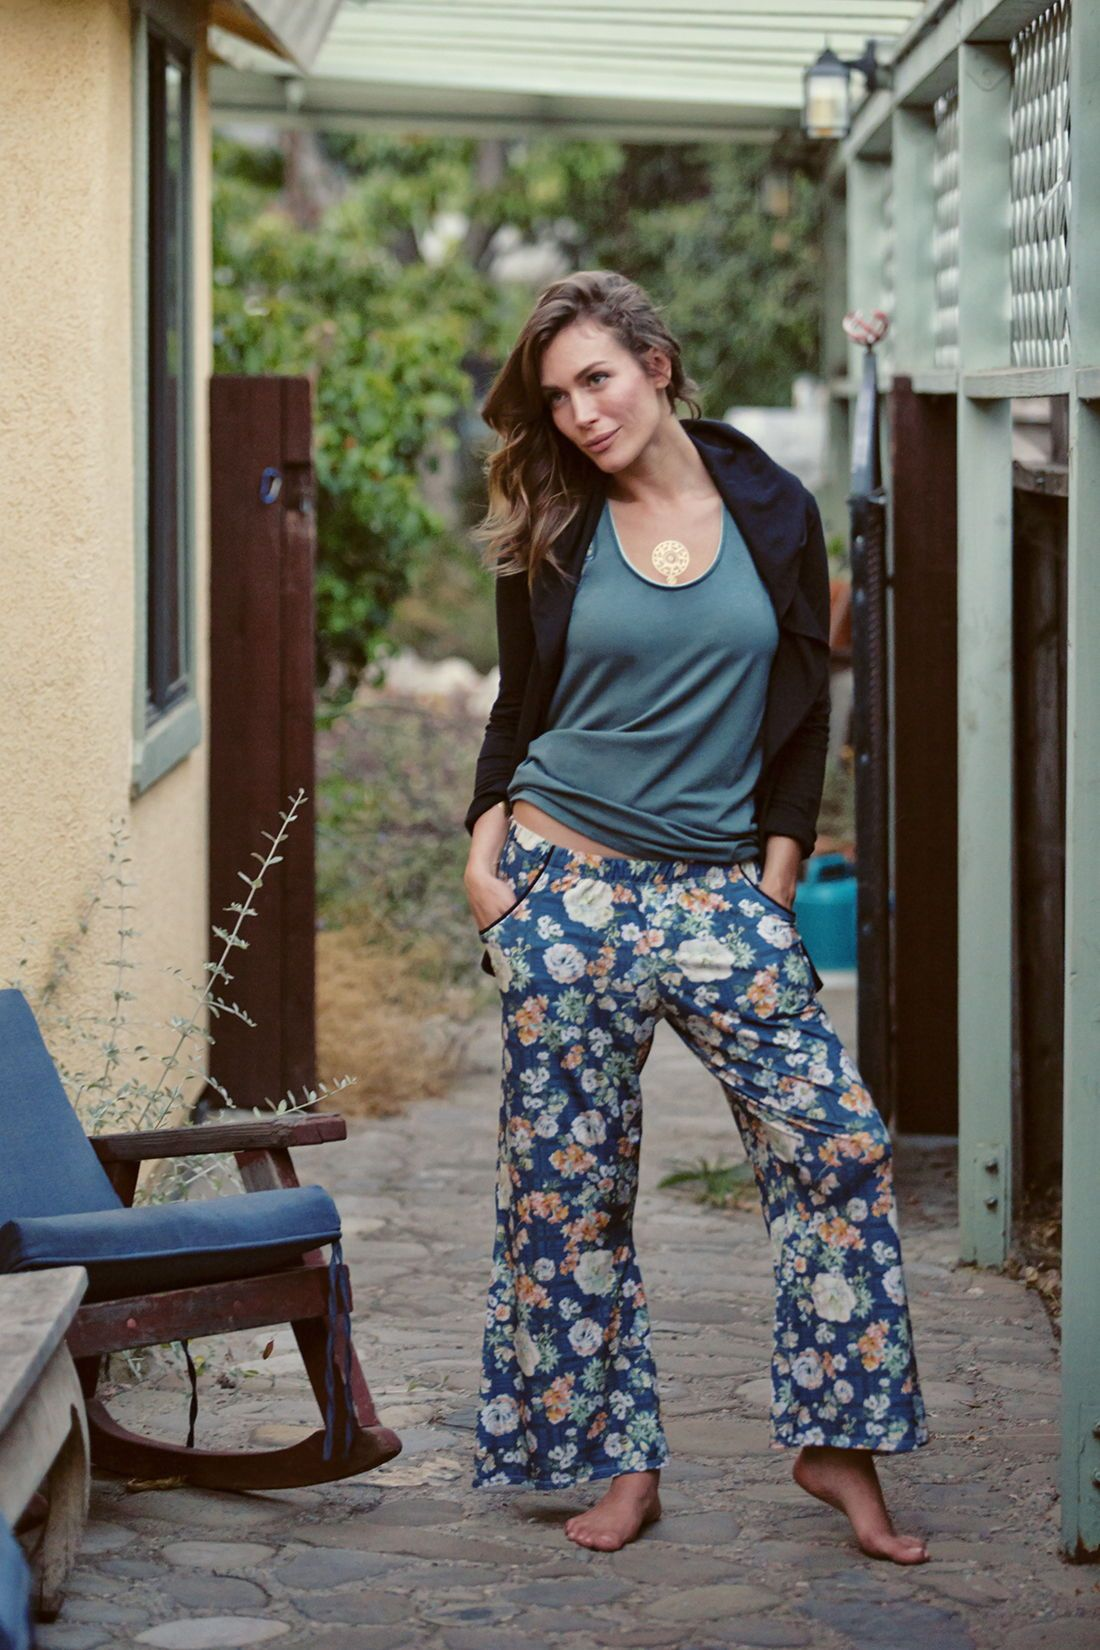 c279e04eaea eco friendly ethically made women's fashion // MAJAMAS EARTH // comfy teal  blue floral